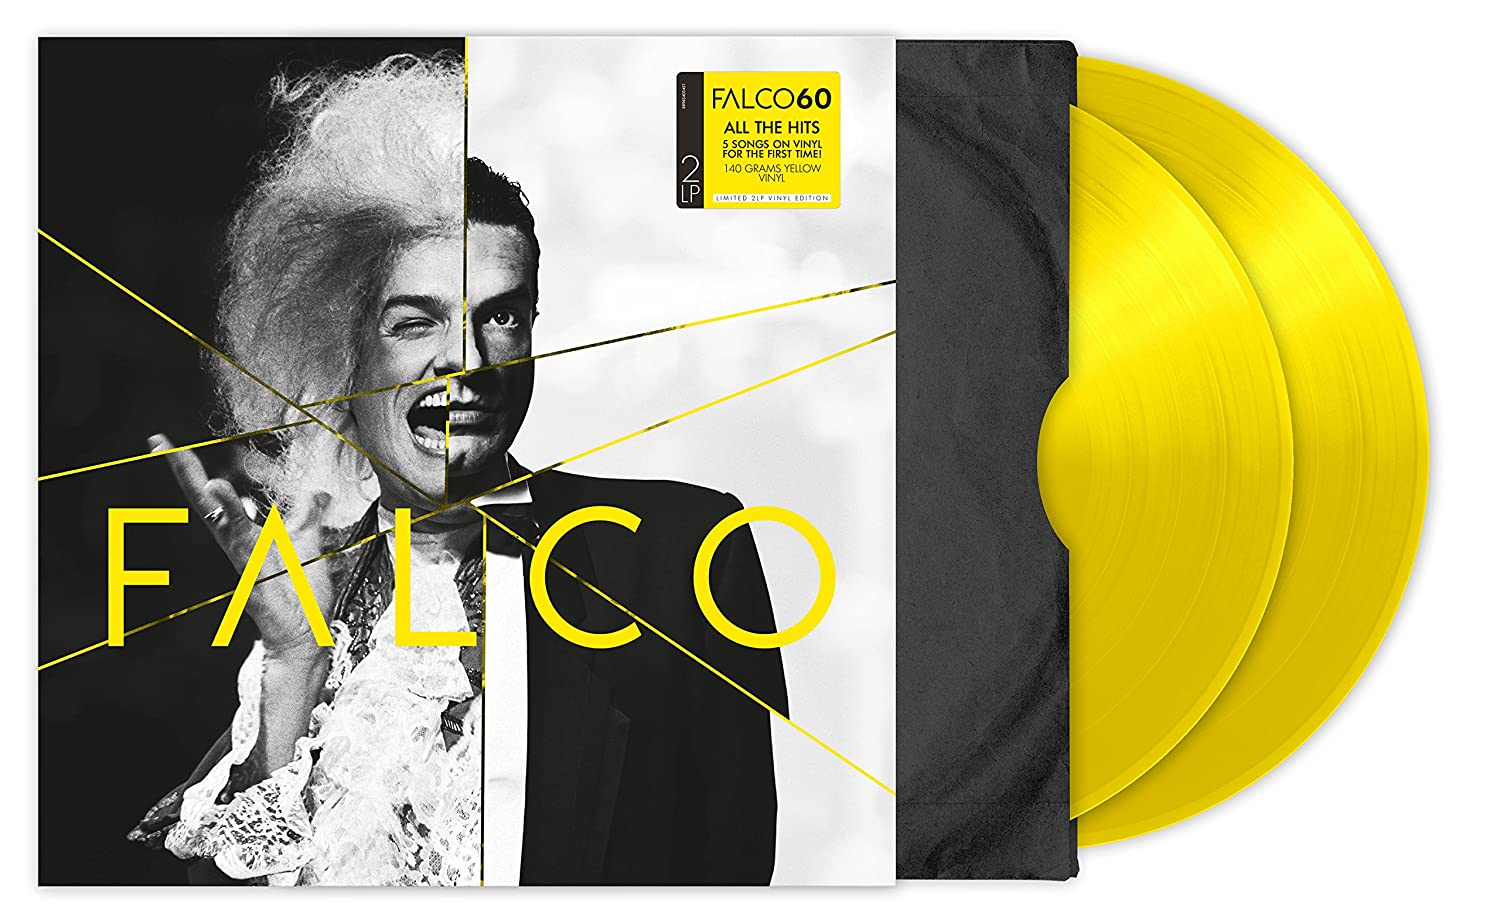 Falco 60 2LP [Vinyl LP] Falco Amazon Musik